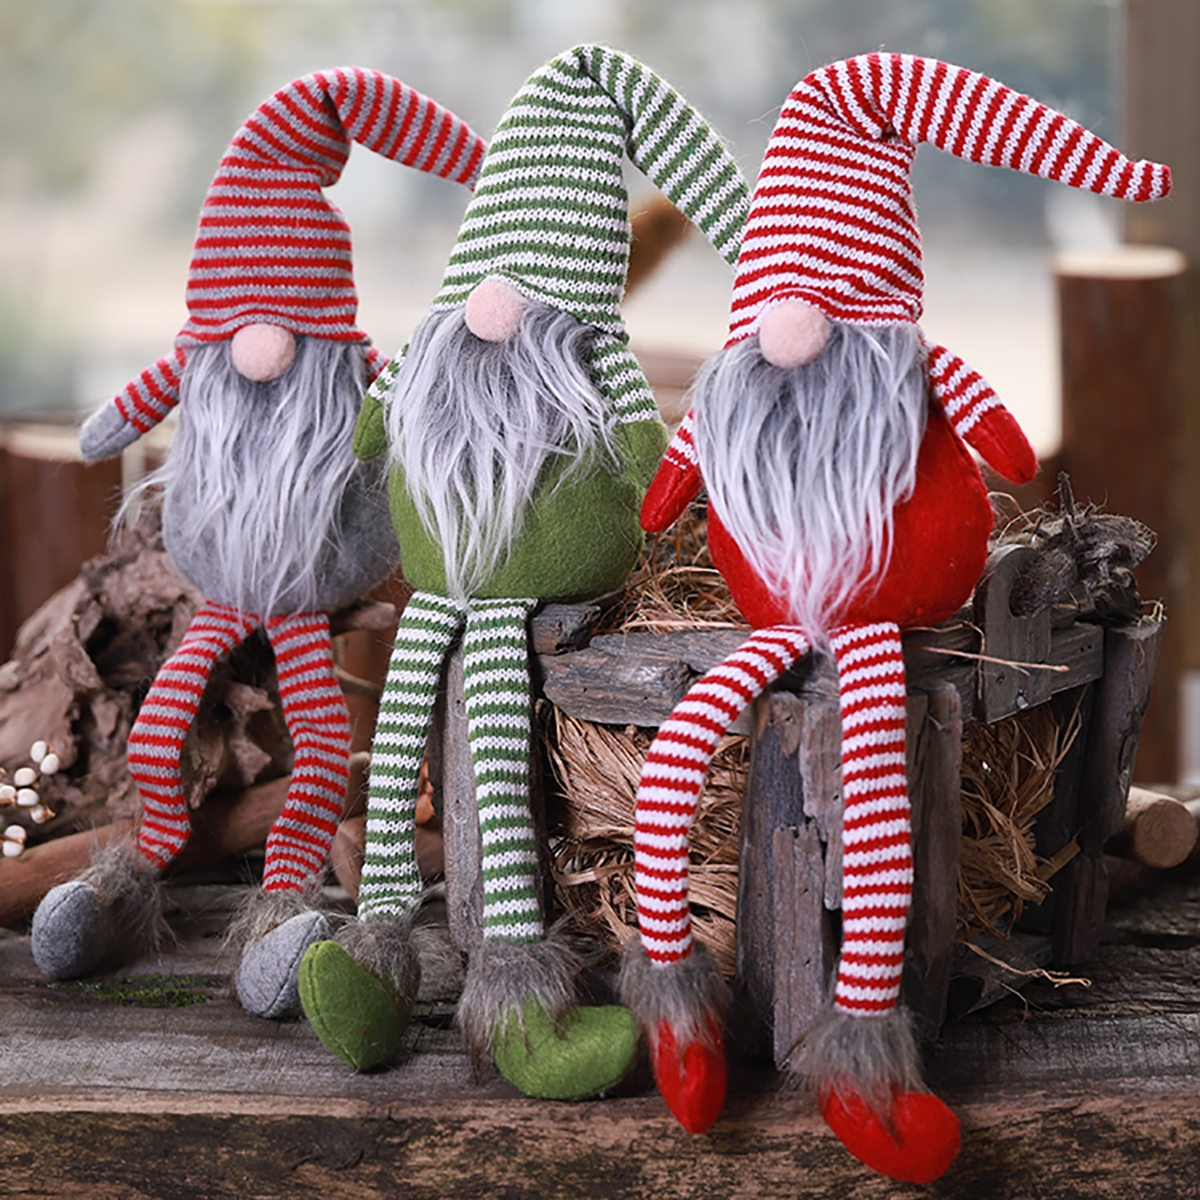 Non-Woven Hat With Long Legs Handmade Gnome Santa Christmas Figurines Ornament Decorations Toys